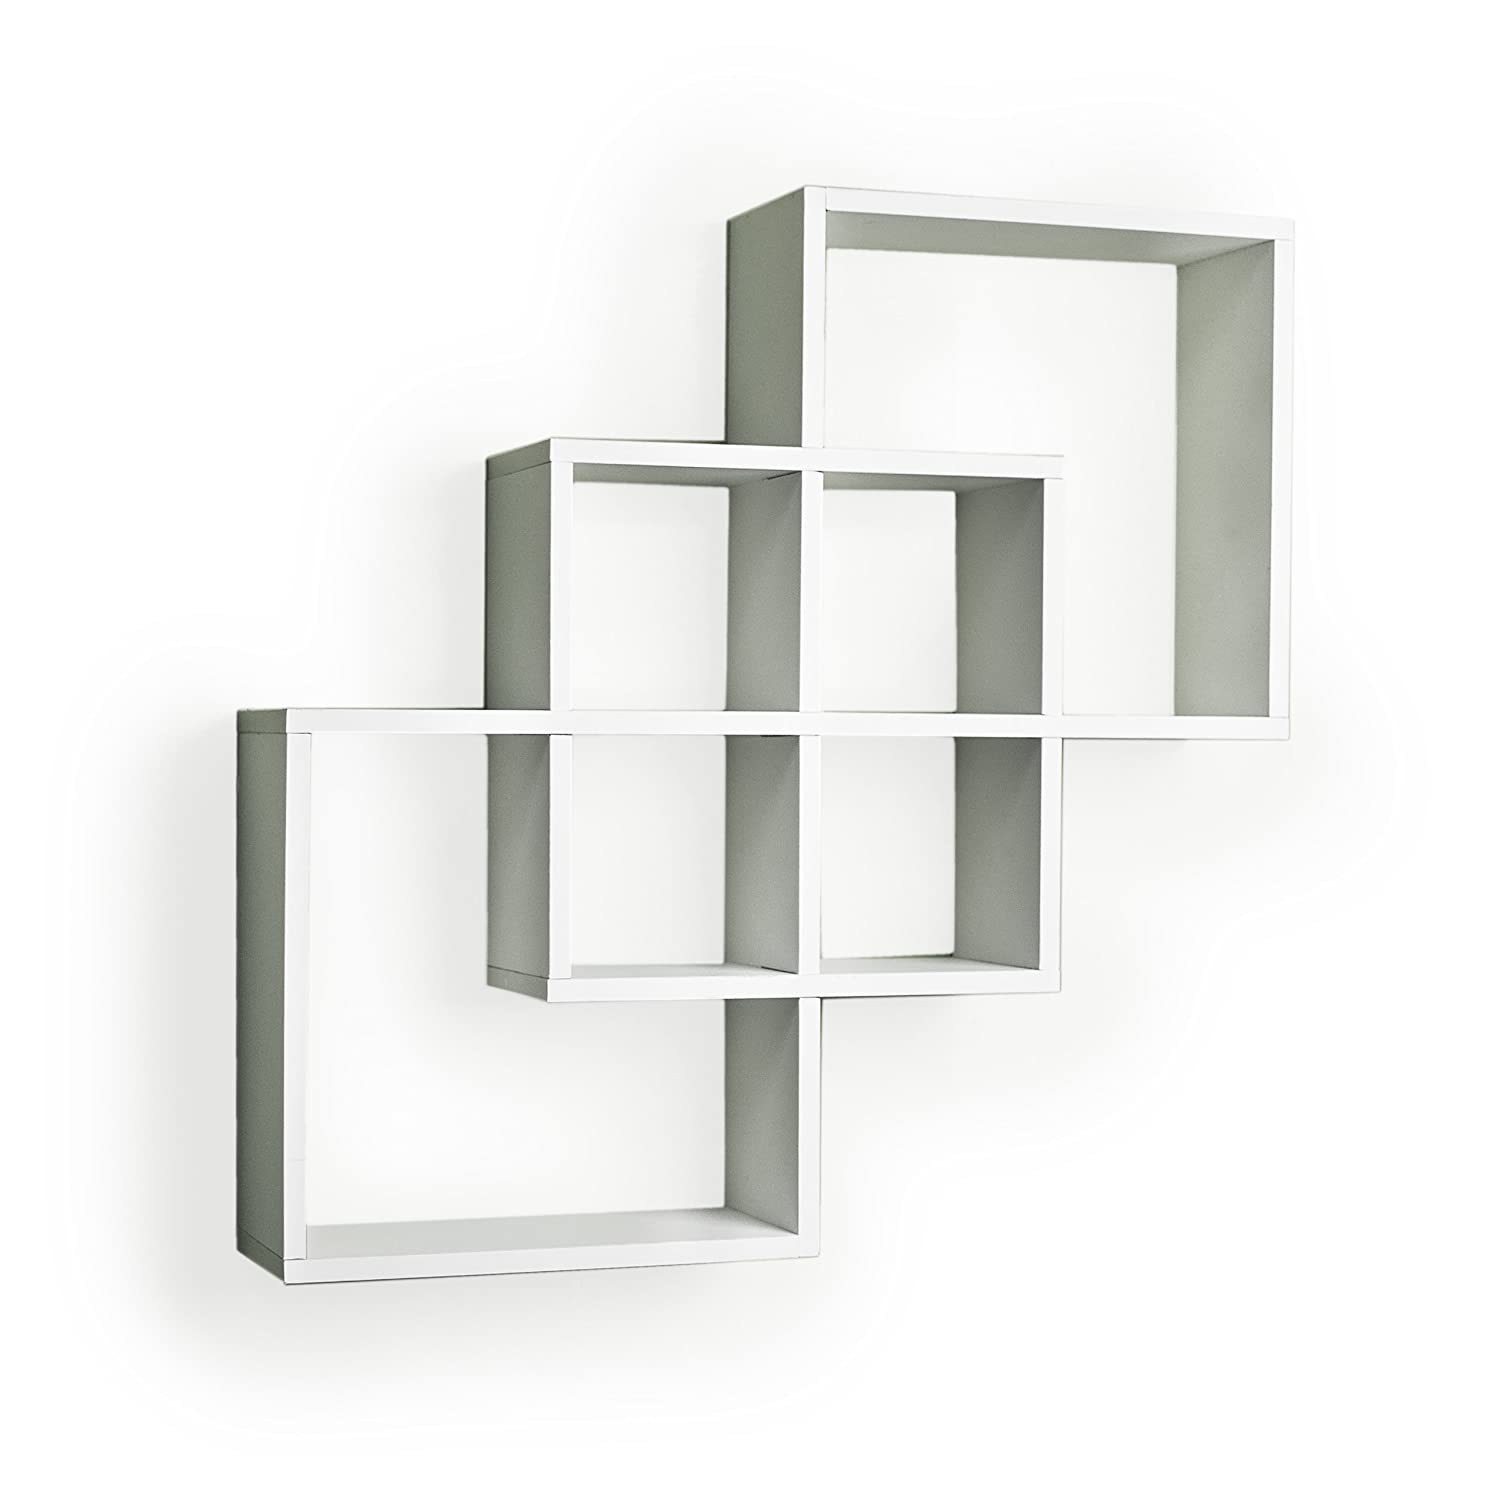 Danya B Ff6013w Decorative Contemporary Floating Intersecting Square Cube  Wall Shelves-white